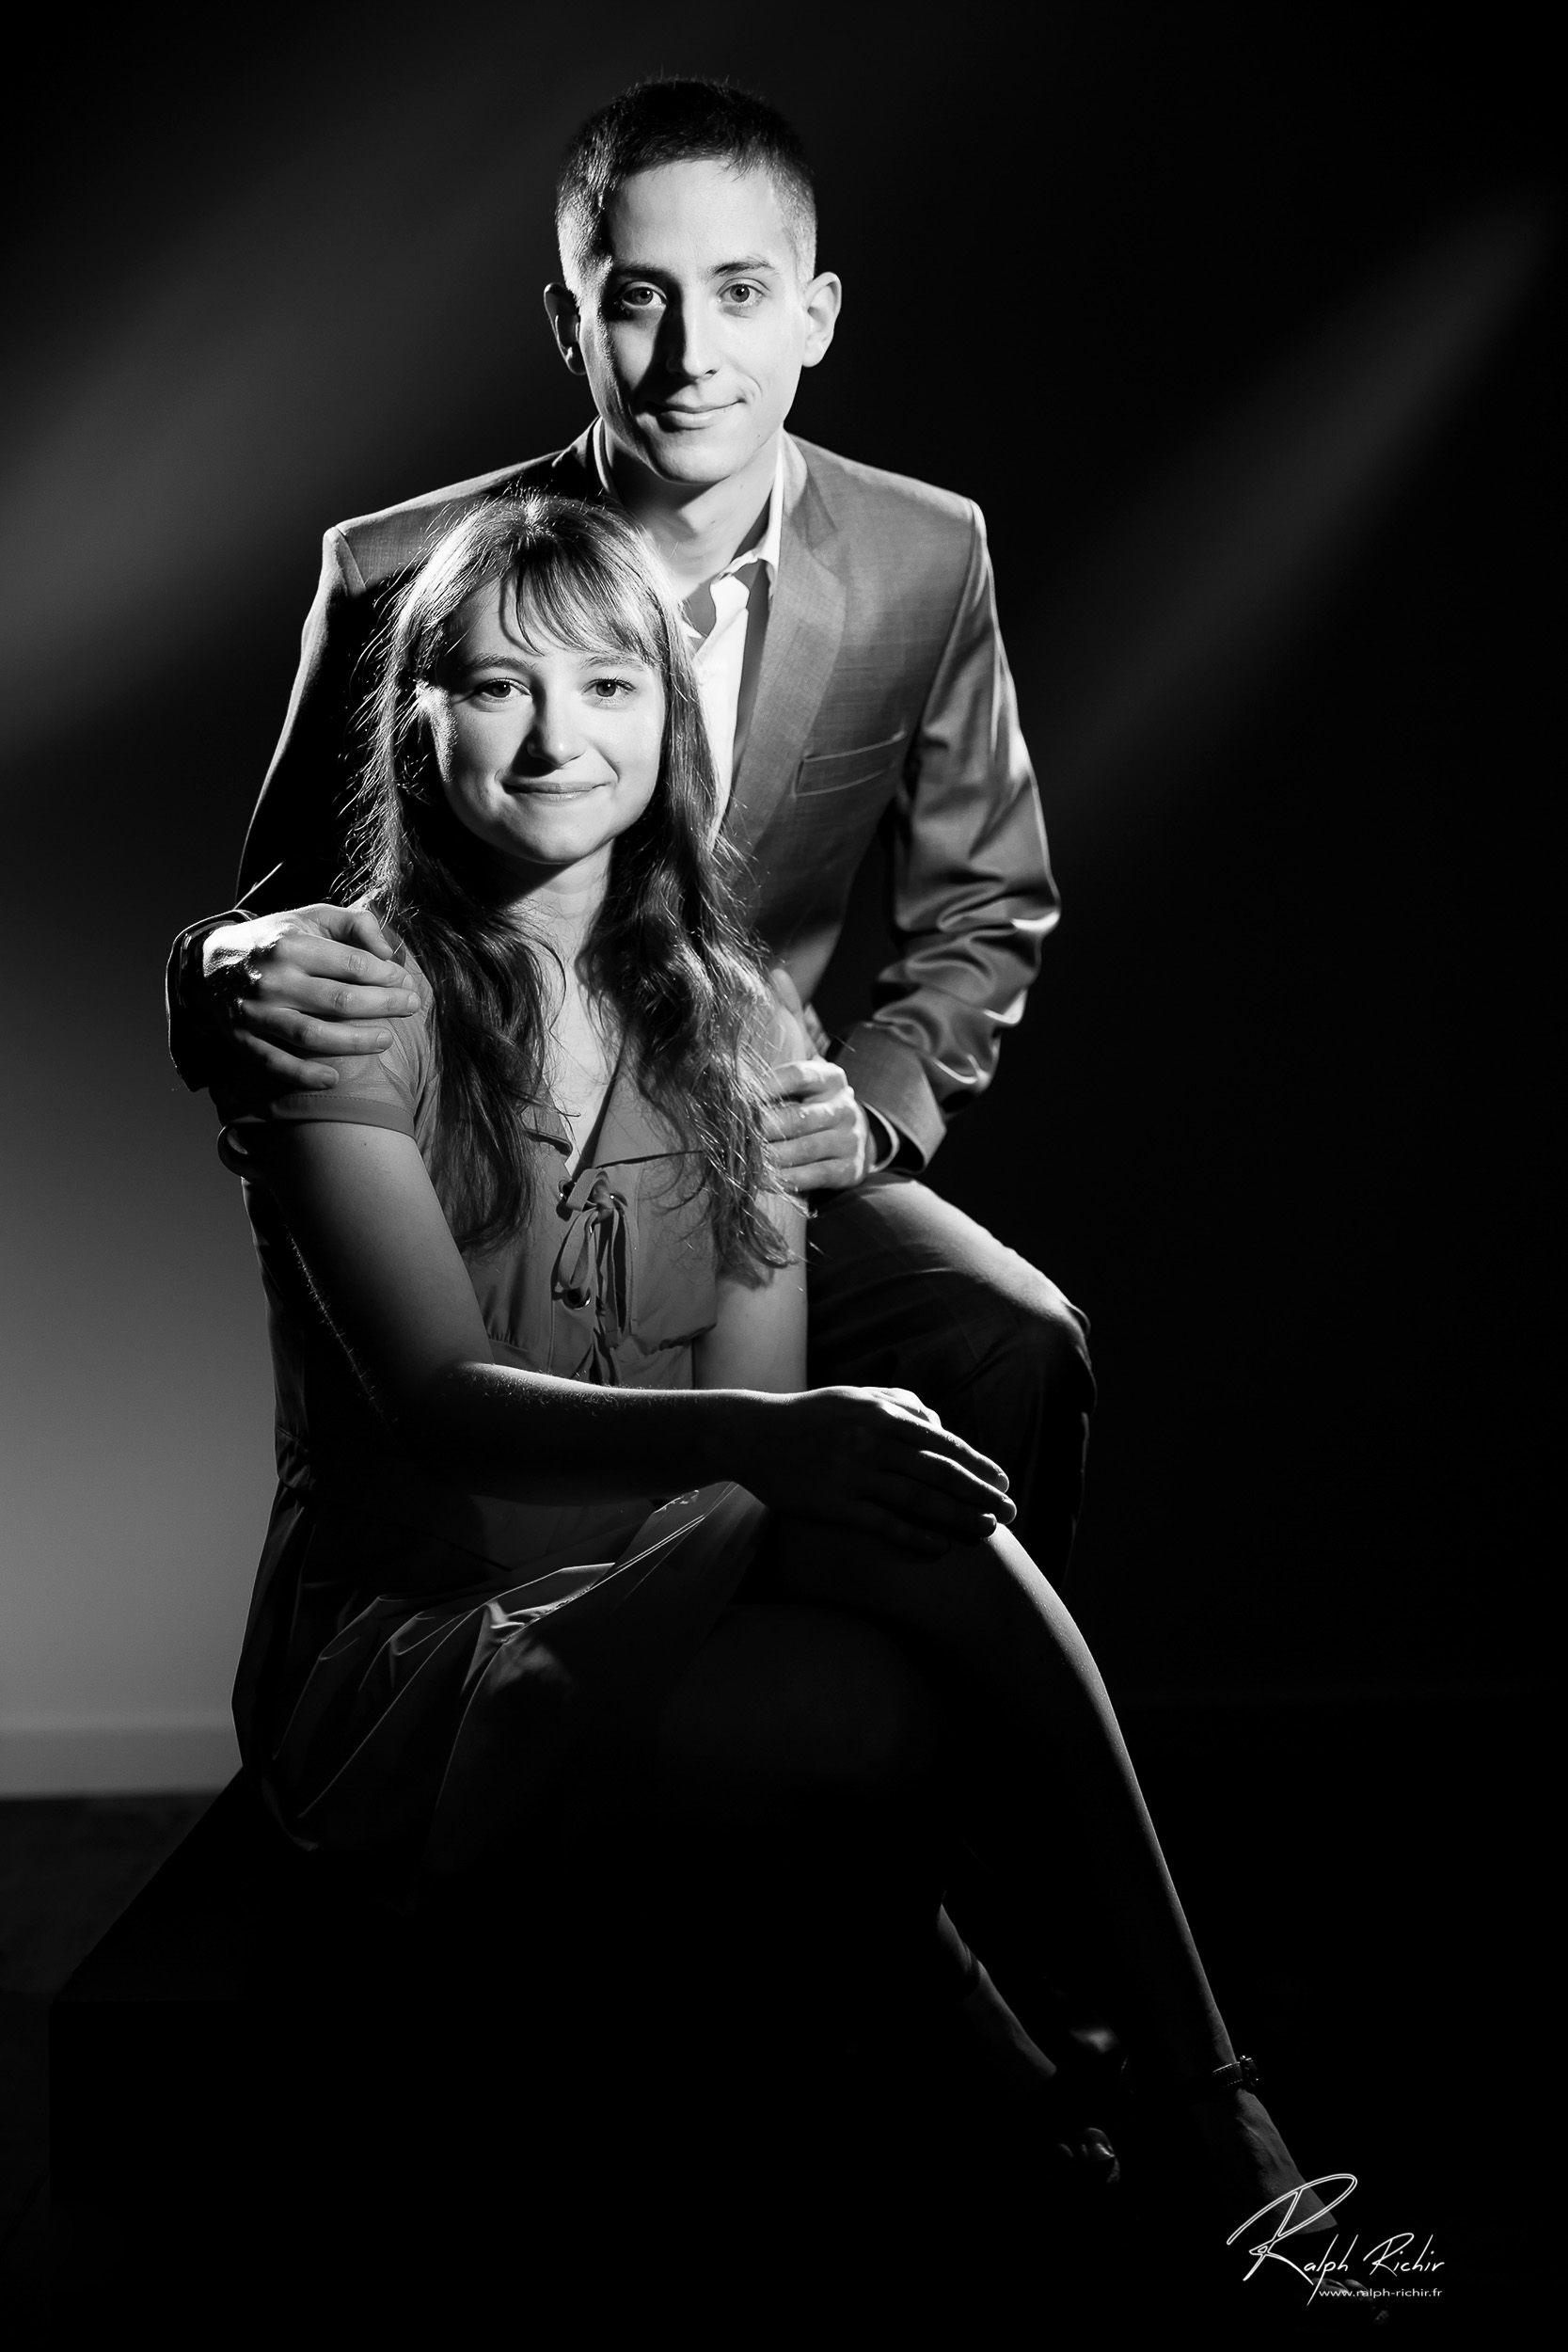 potrtait, photo de couple, studio photo, toulon, galerie ralph richir, www.ralph-richir.fr-6